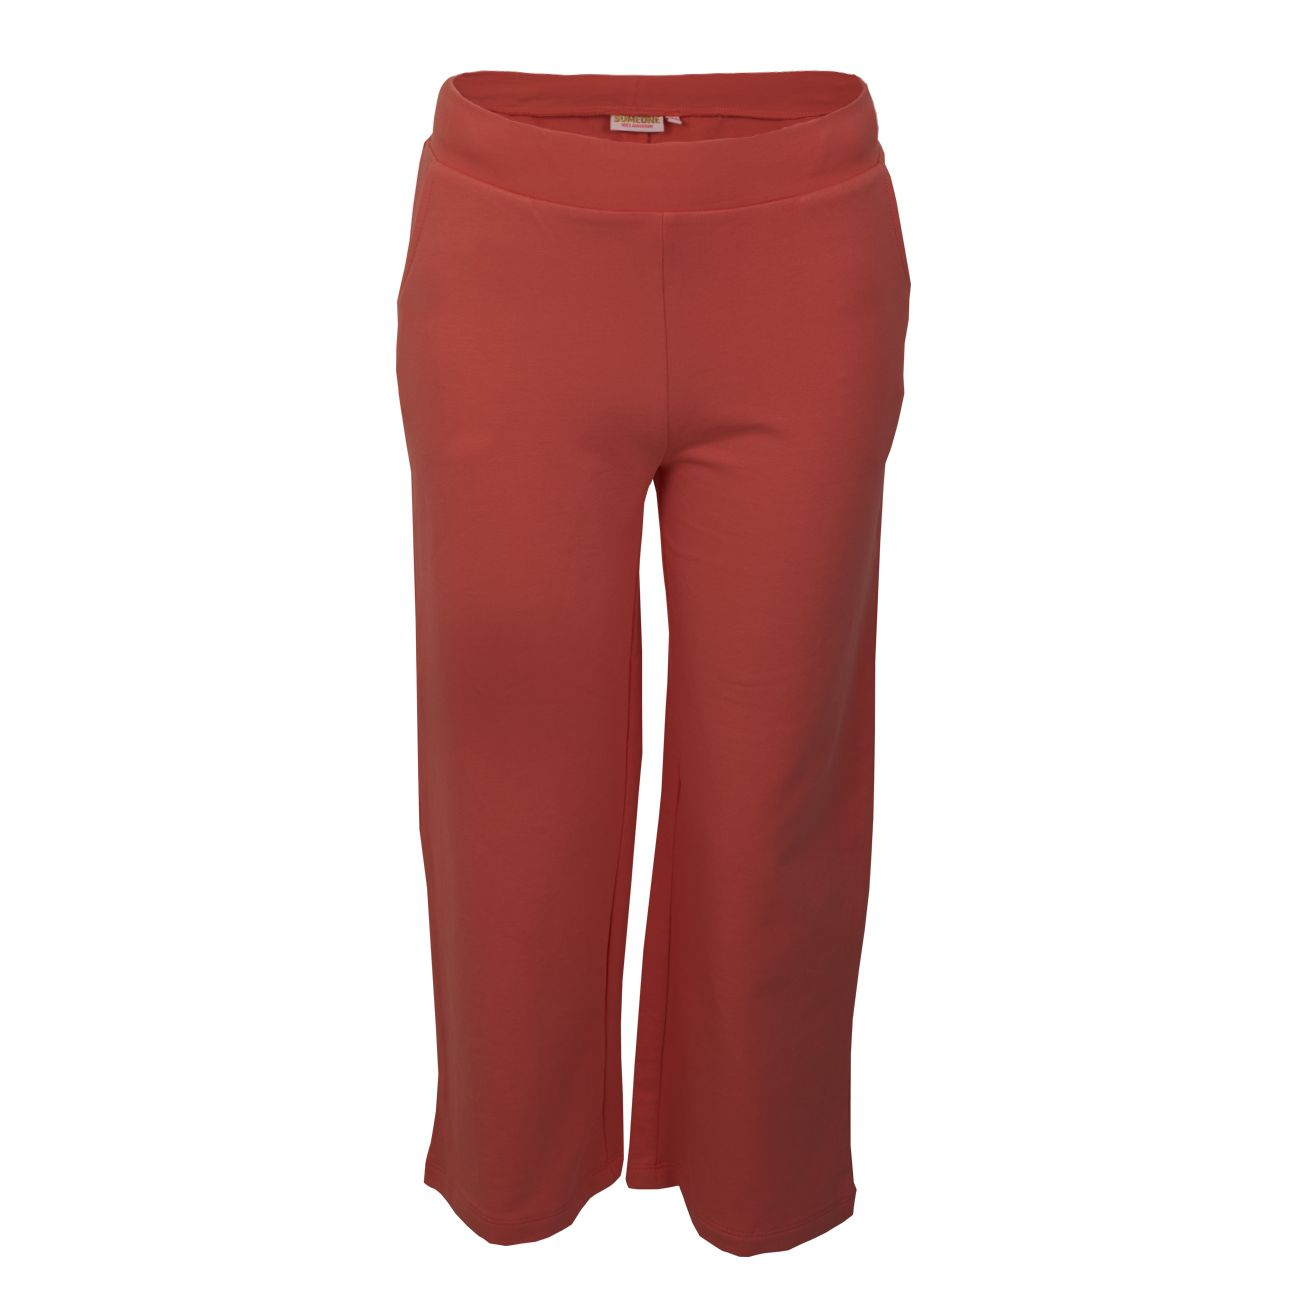 Culotte 116 Coral SOMEONE 100% Awesome